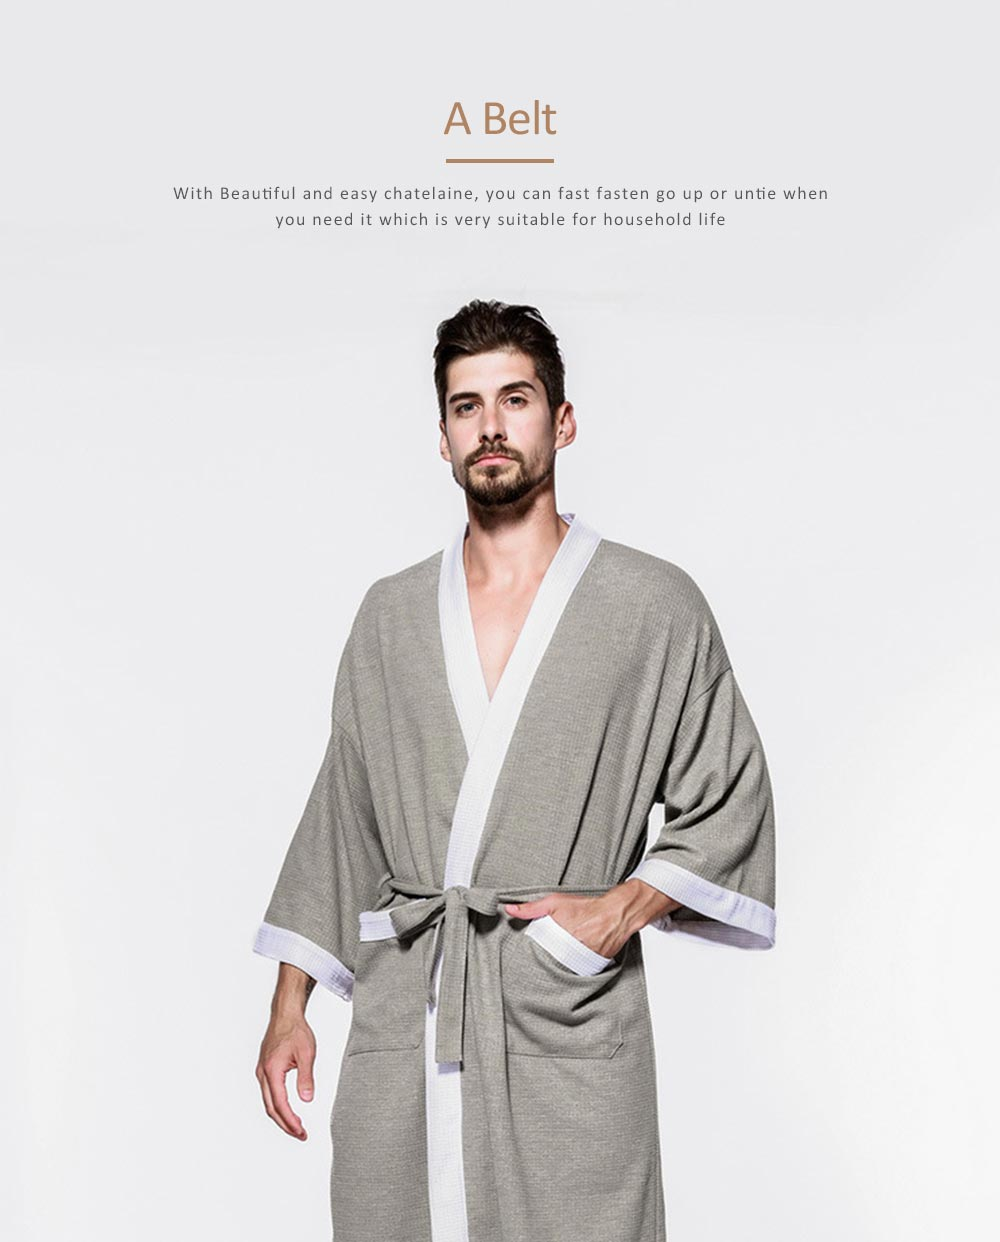 Men All-cotton Skin-friendly Night Gown, Bathrobe, Sweat Sauna Towel for Beauty Salon and Spa Hotel 2